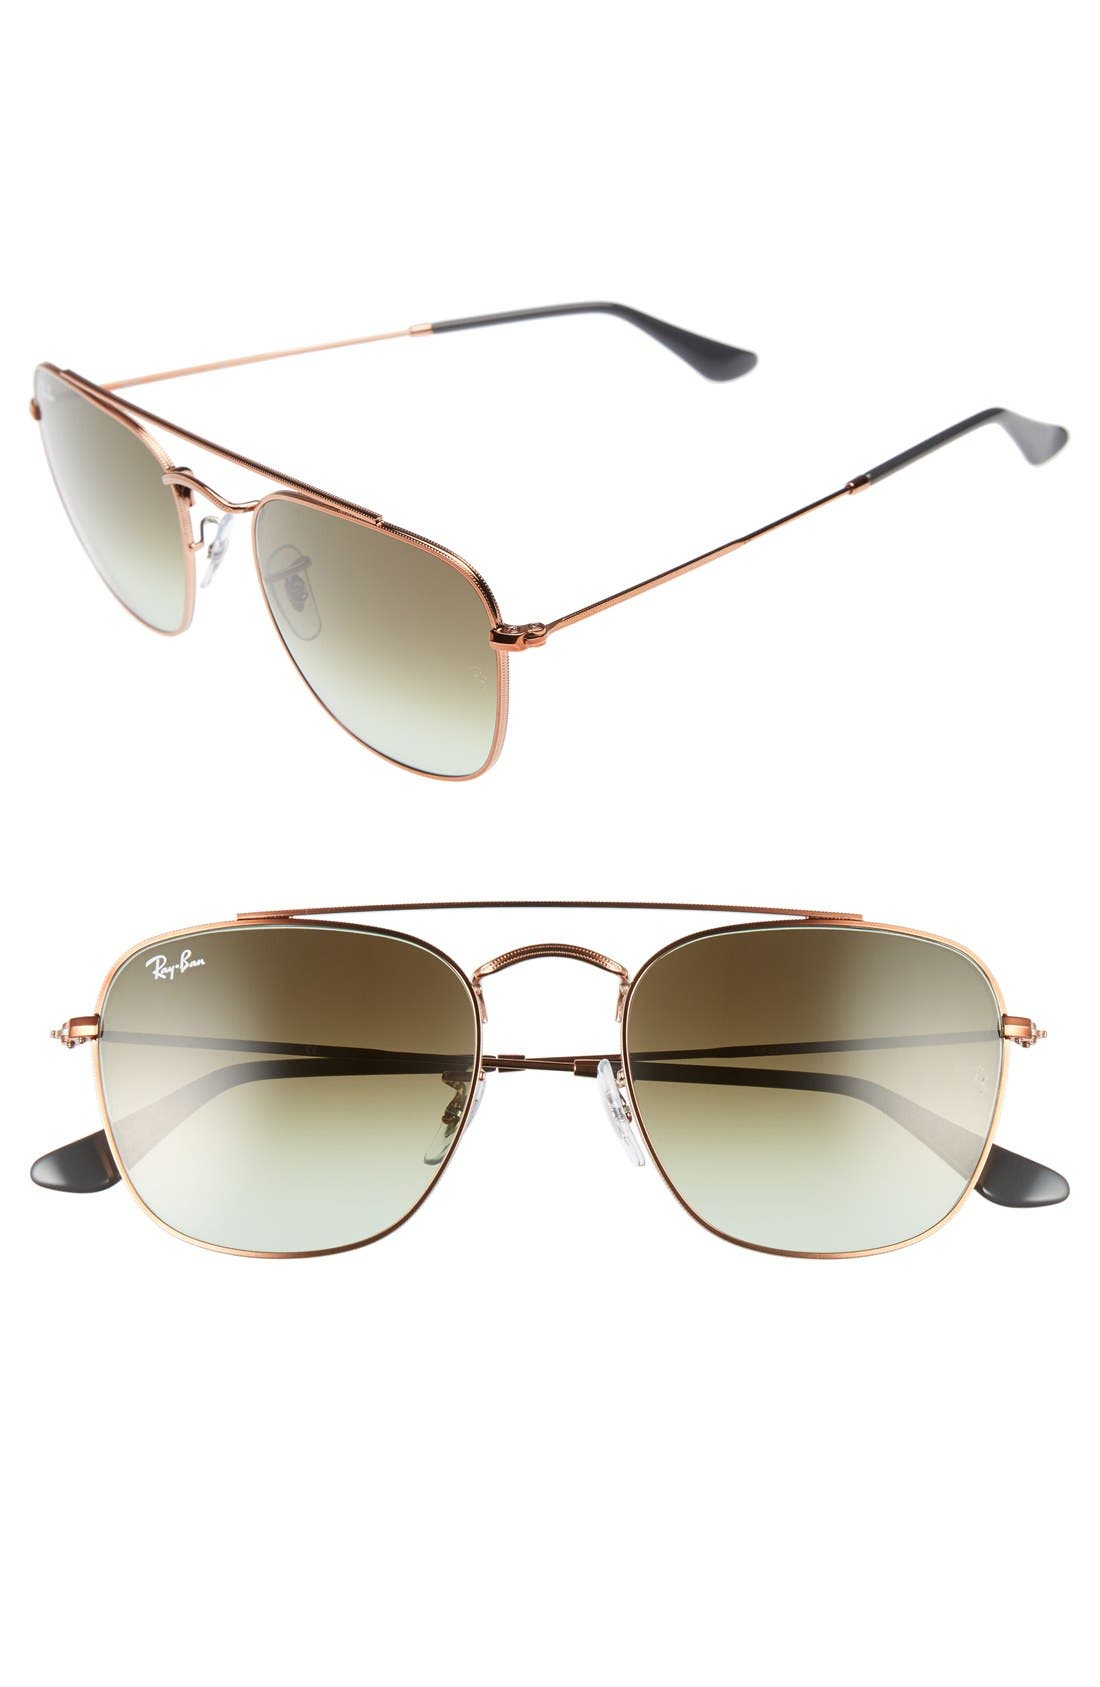 Alternate Image 1 Selected - Ray-Ban Icons 54mm Aviator Sunglasses